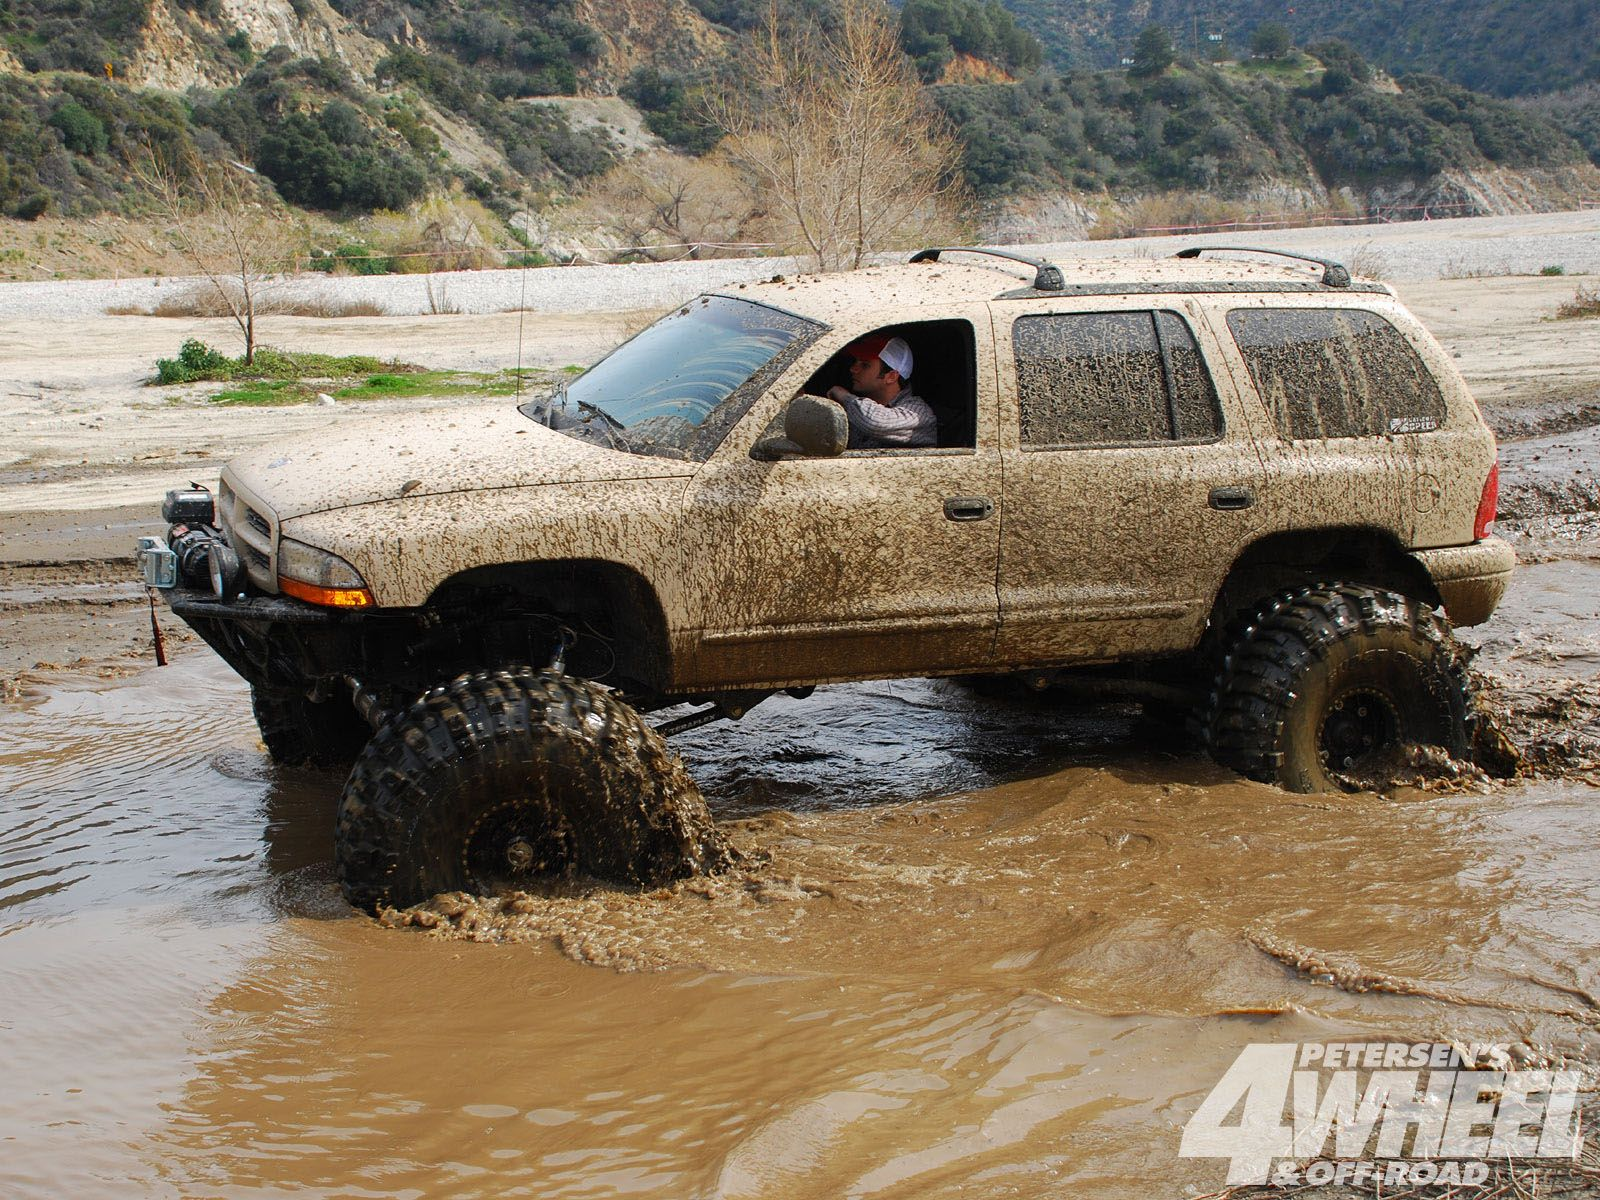 1999 Dodge Durango Mudding Water Plunge Mudding Dodge Durango Dodge Lifted Dodge